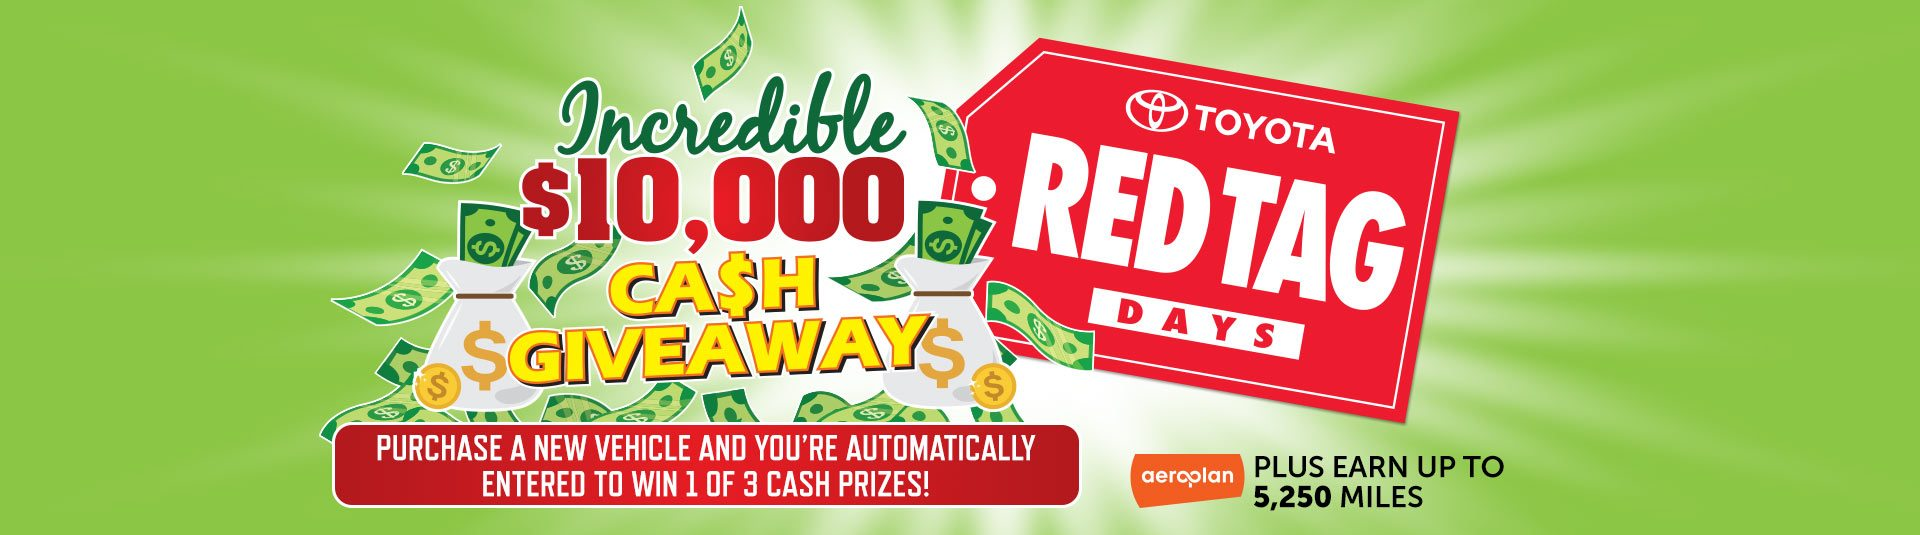 Toyota Red Tag Day & $10,000 Giveaway